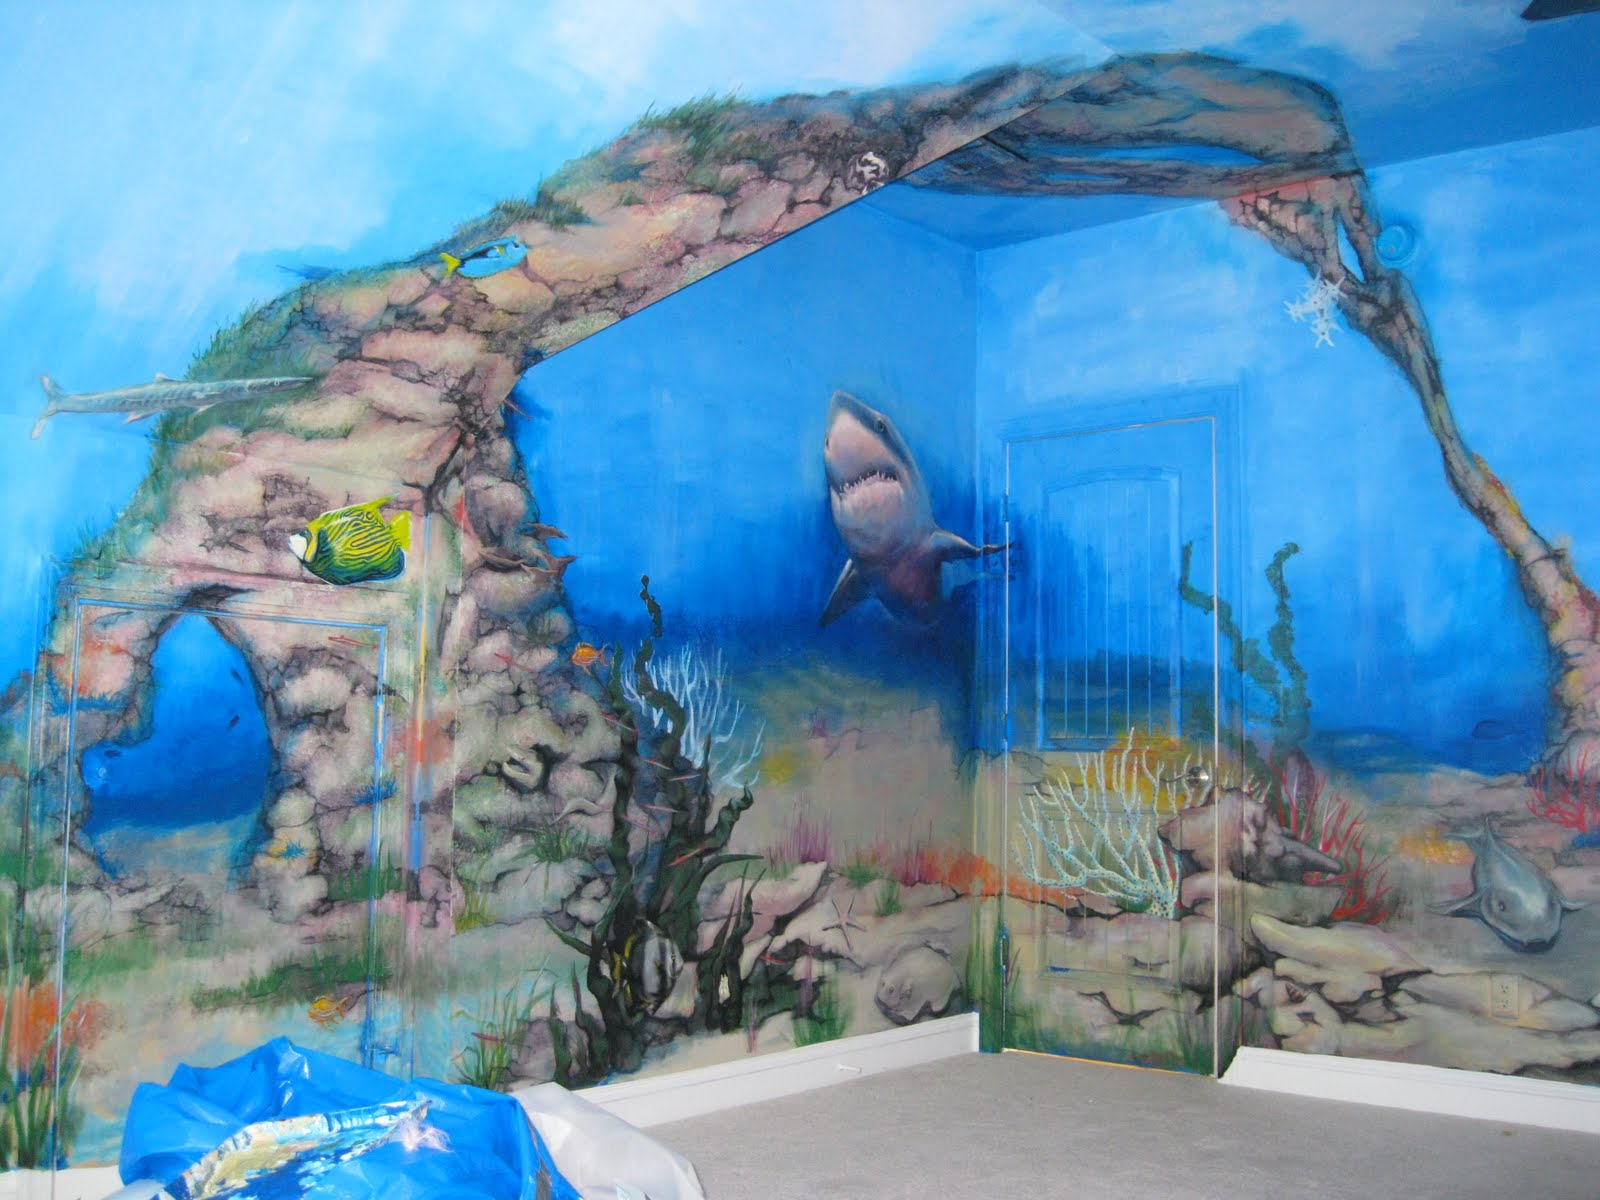 Erika Atzl Ocean Mural Comission. Choice Signs Of Stroke. Multiculturalism Murals. Cooker Logo. Korean Signs Of Stroke. Counseling Banners. Robot Murals. Theater Signs. Health Safety Signs Of Stroke